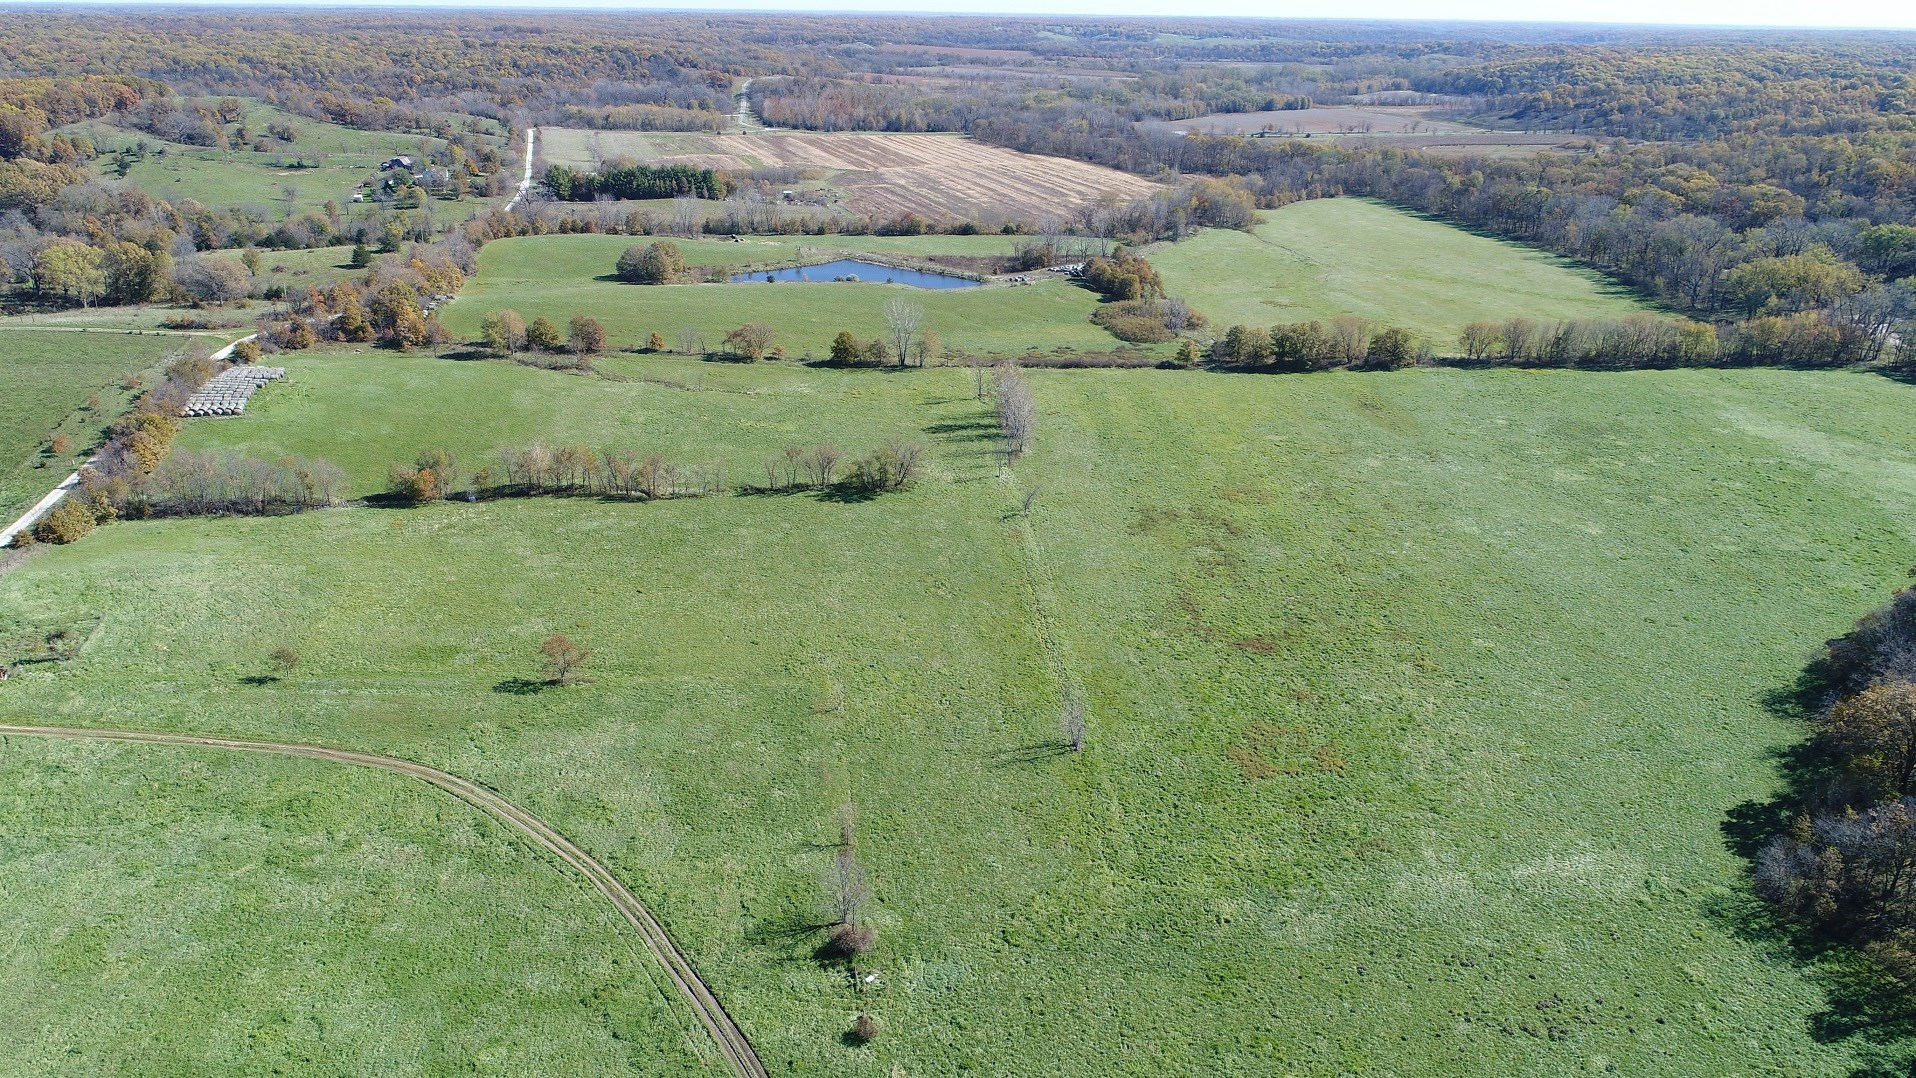 NORTHERN MO LAND FOR SALE, PASTURE, HAY GROUND, NW MO HUNT